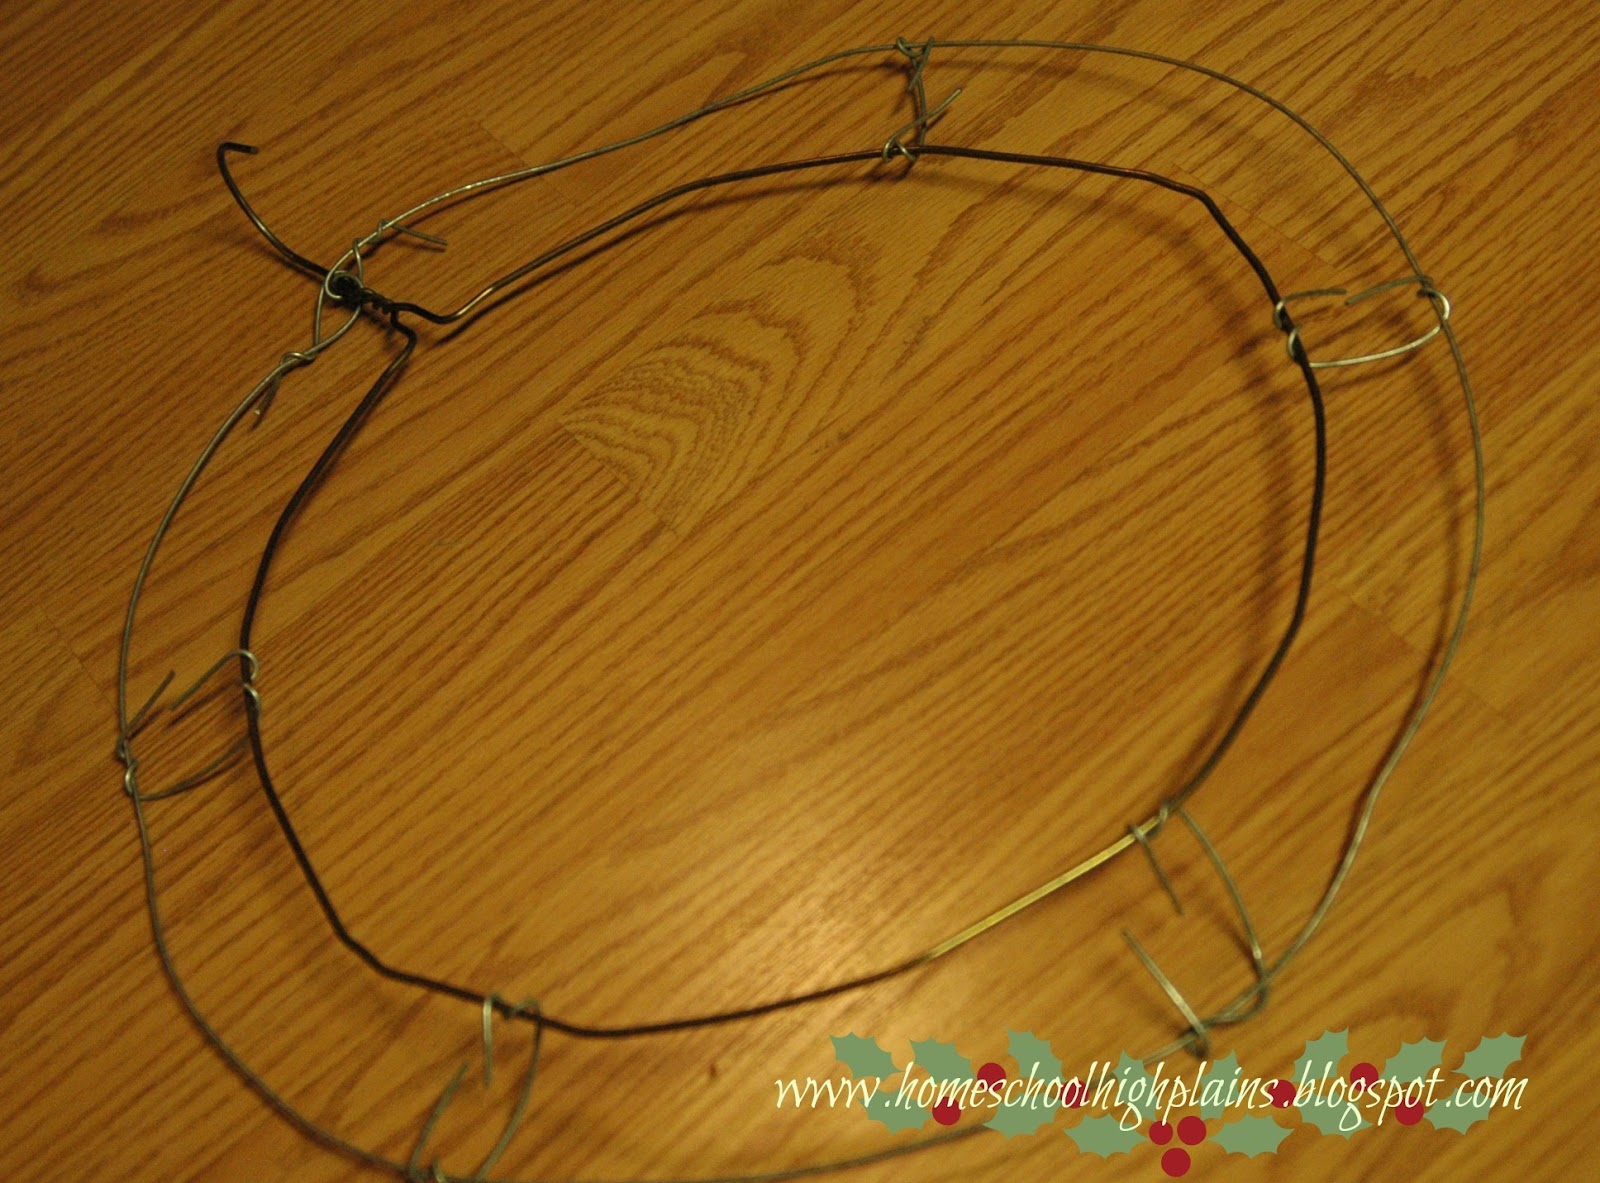 how to cut a wire hanger without wire cutters